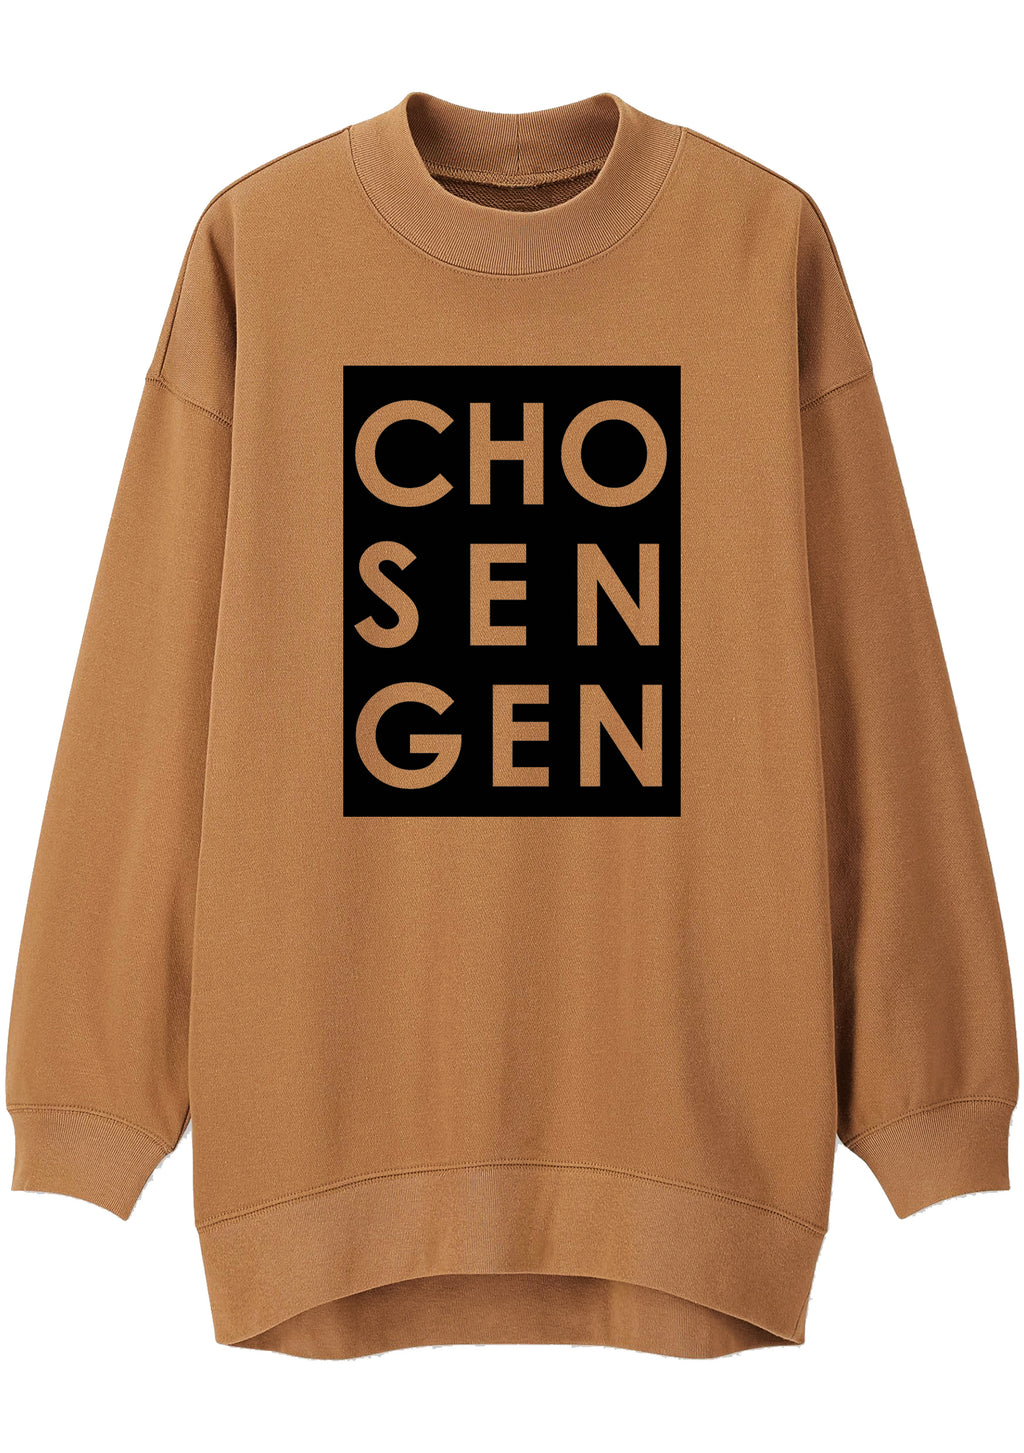 Unisex CHOSEN GEN BOX Print Mock Neck Relaxed Sweatshirt (Camel)